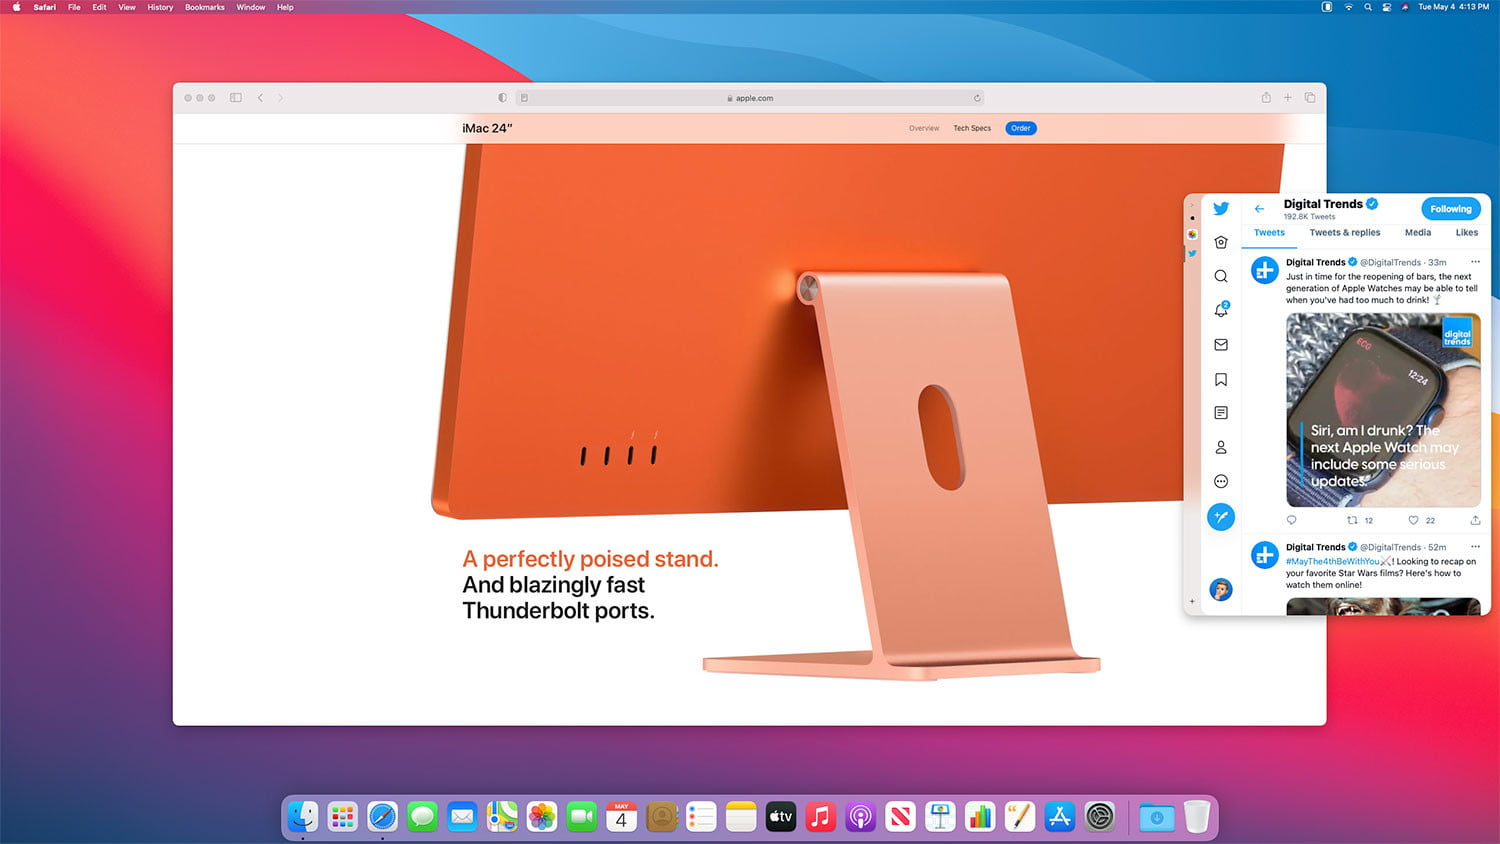 This clever app finally brings an essential iPad feature to the Mac